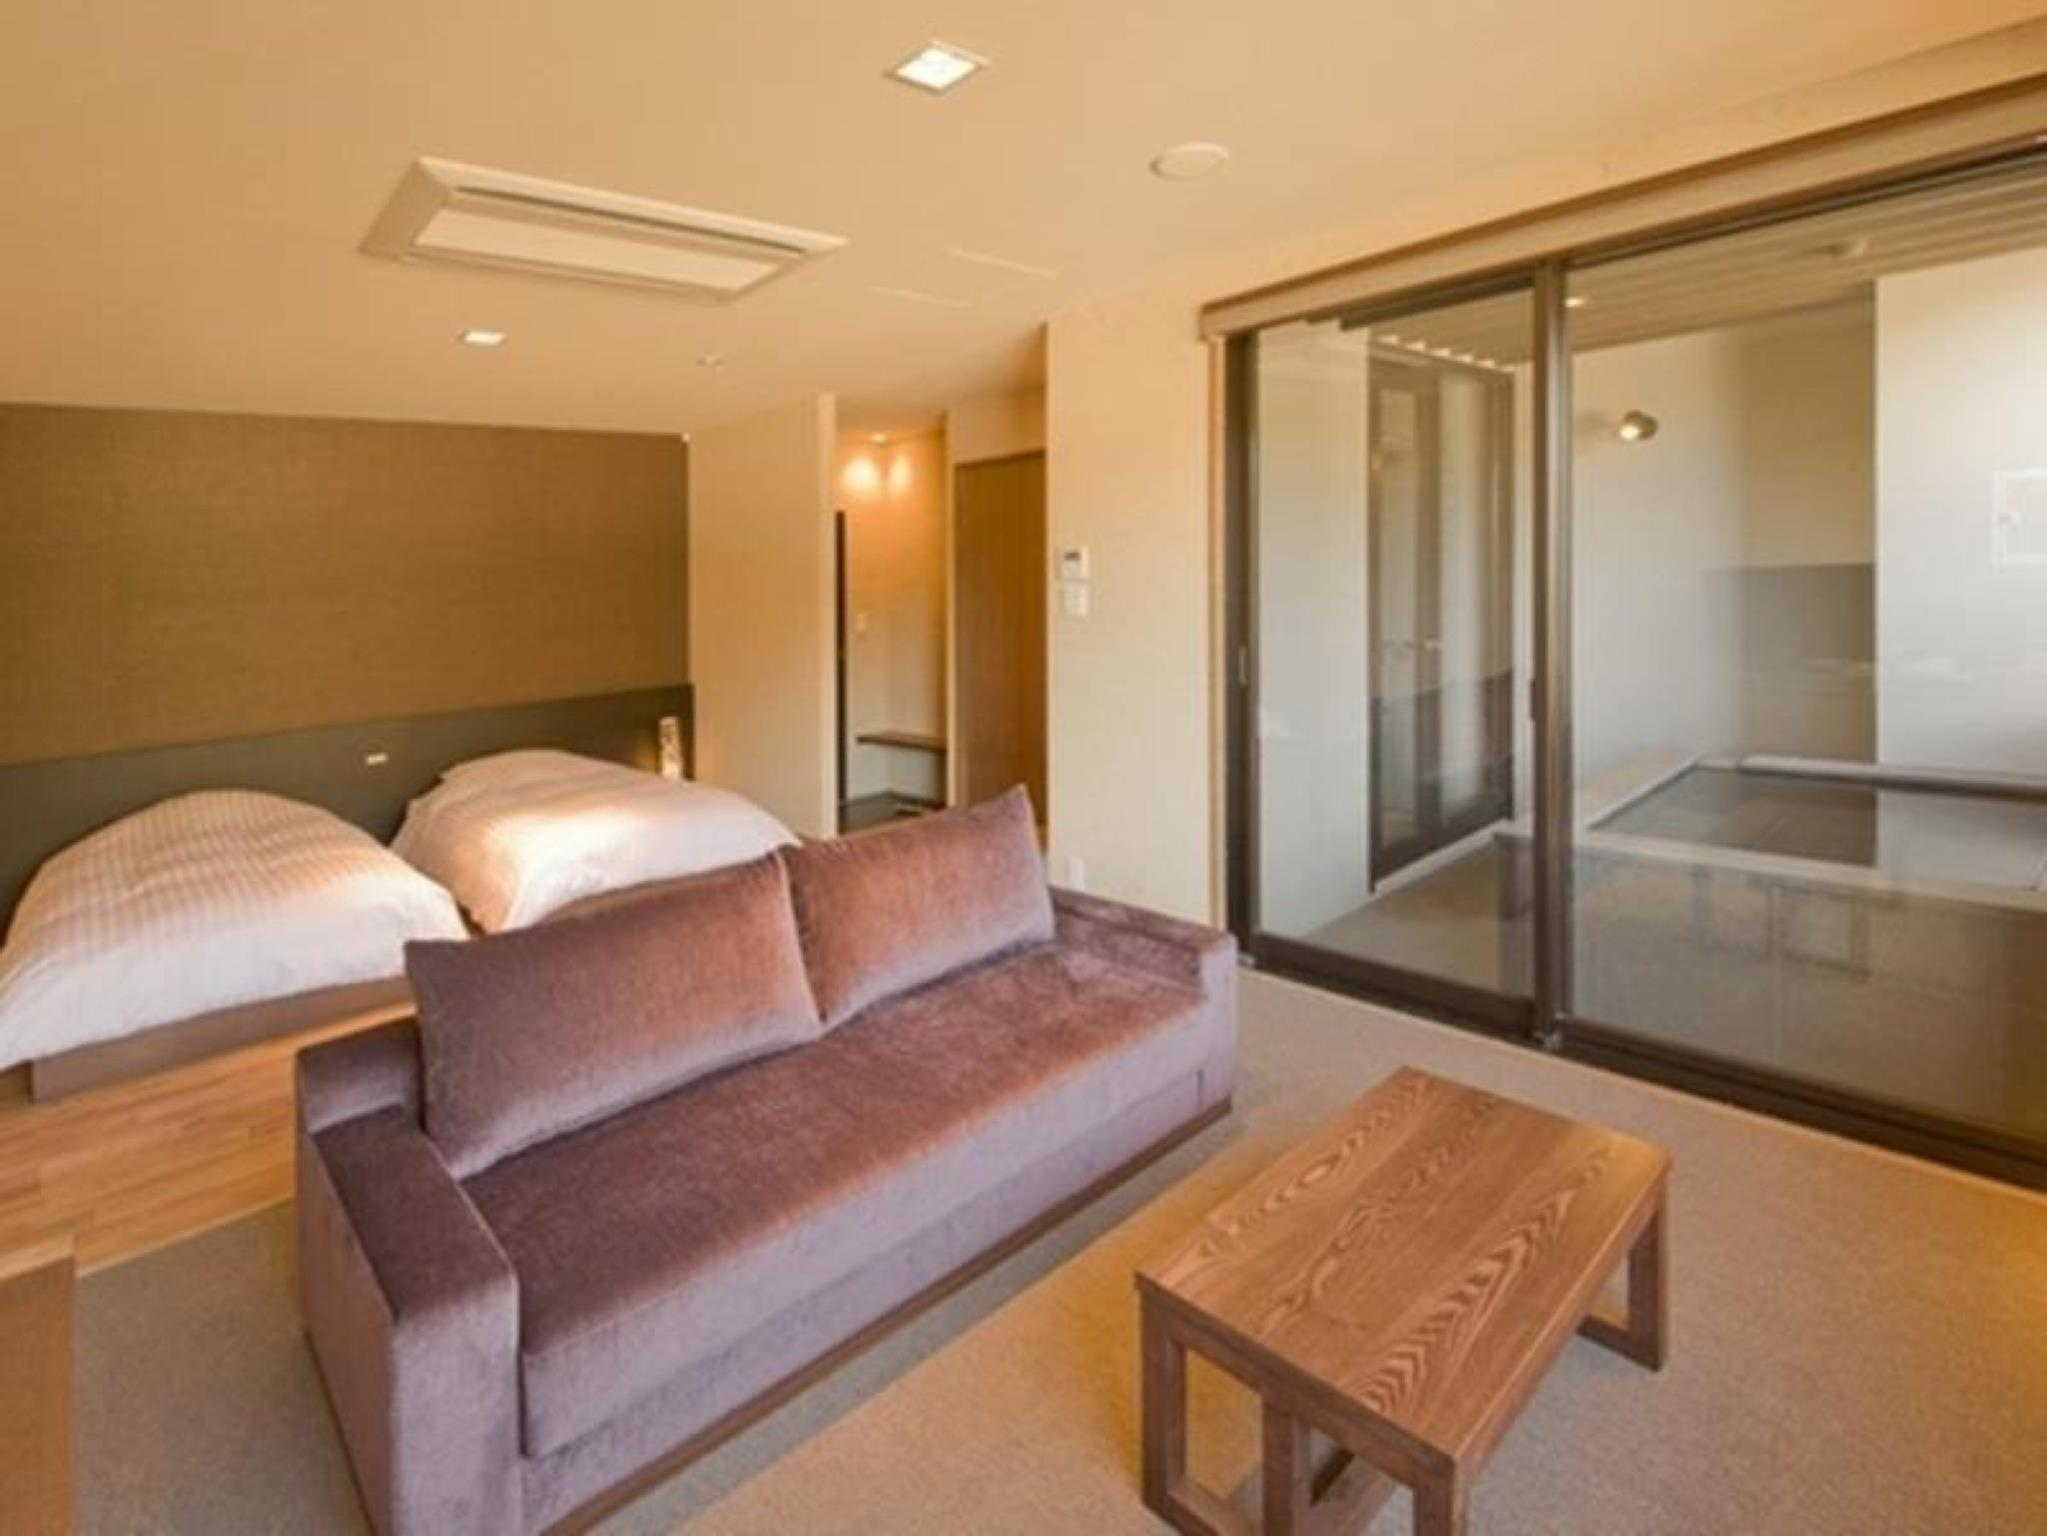 【特惠推廣】客房(兩床) - 有私人露天浴池/禁煙 (Twin Room with Private Open-Air Bath - Non-Smoking, Special Offer)